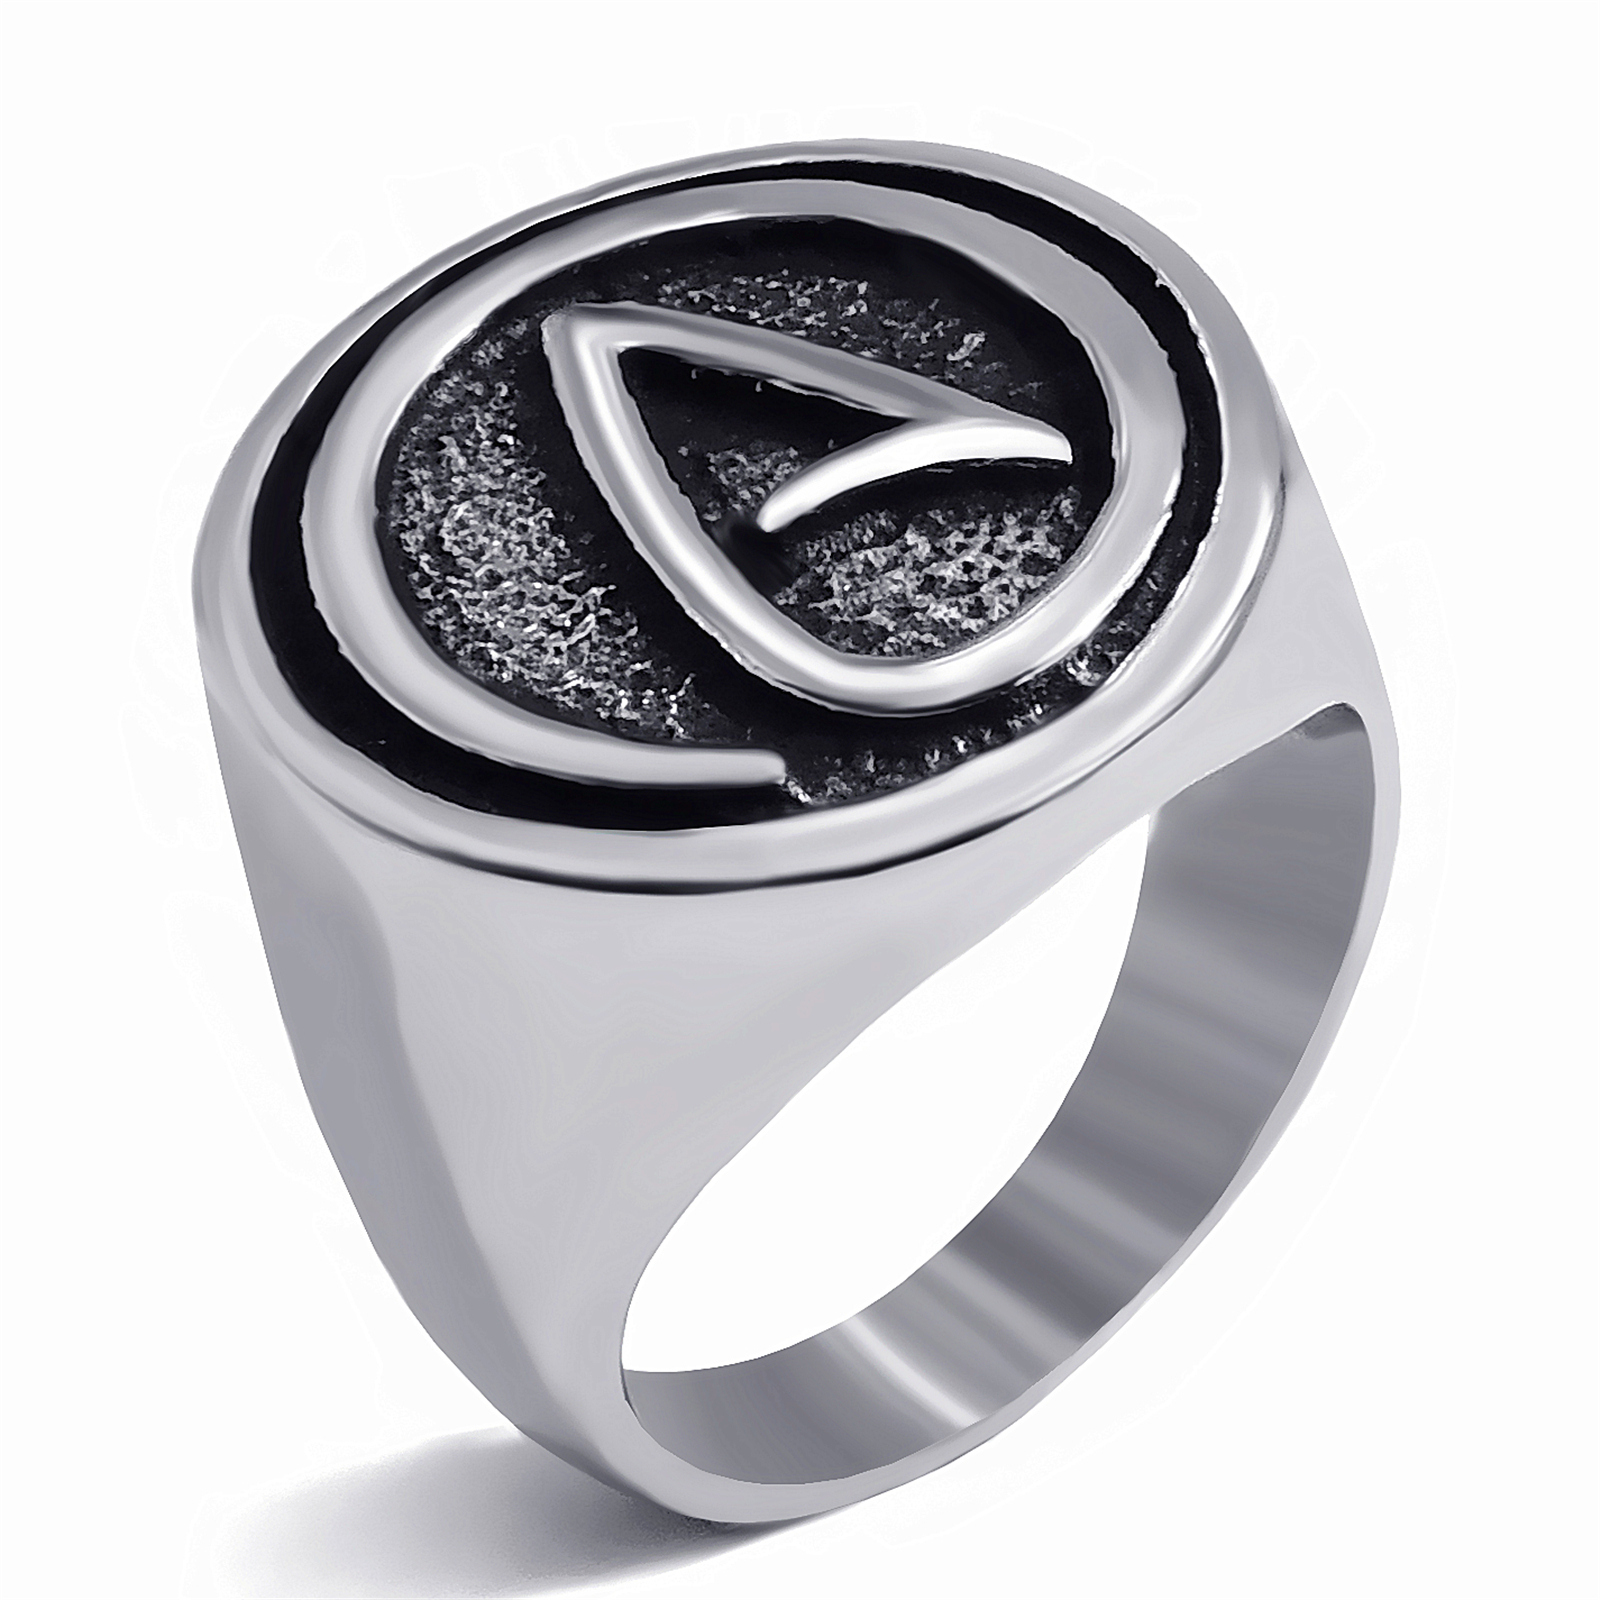 Mens Boys Stainless Steel Ring Atheist Atheism Symbol Silver Jewelry